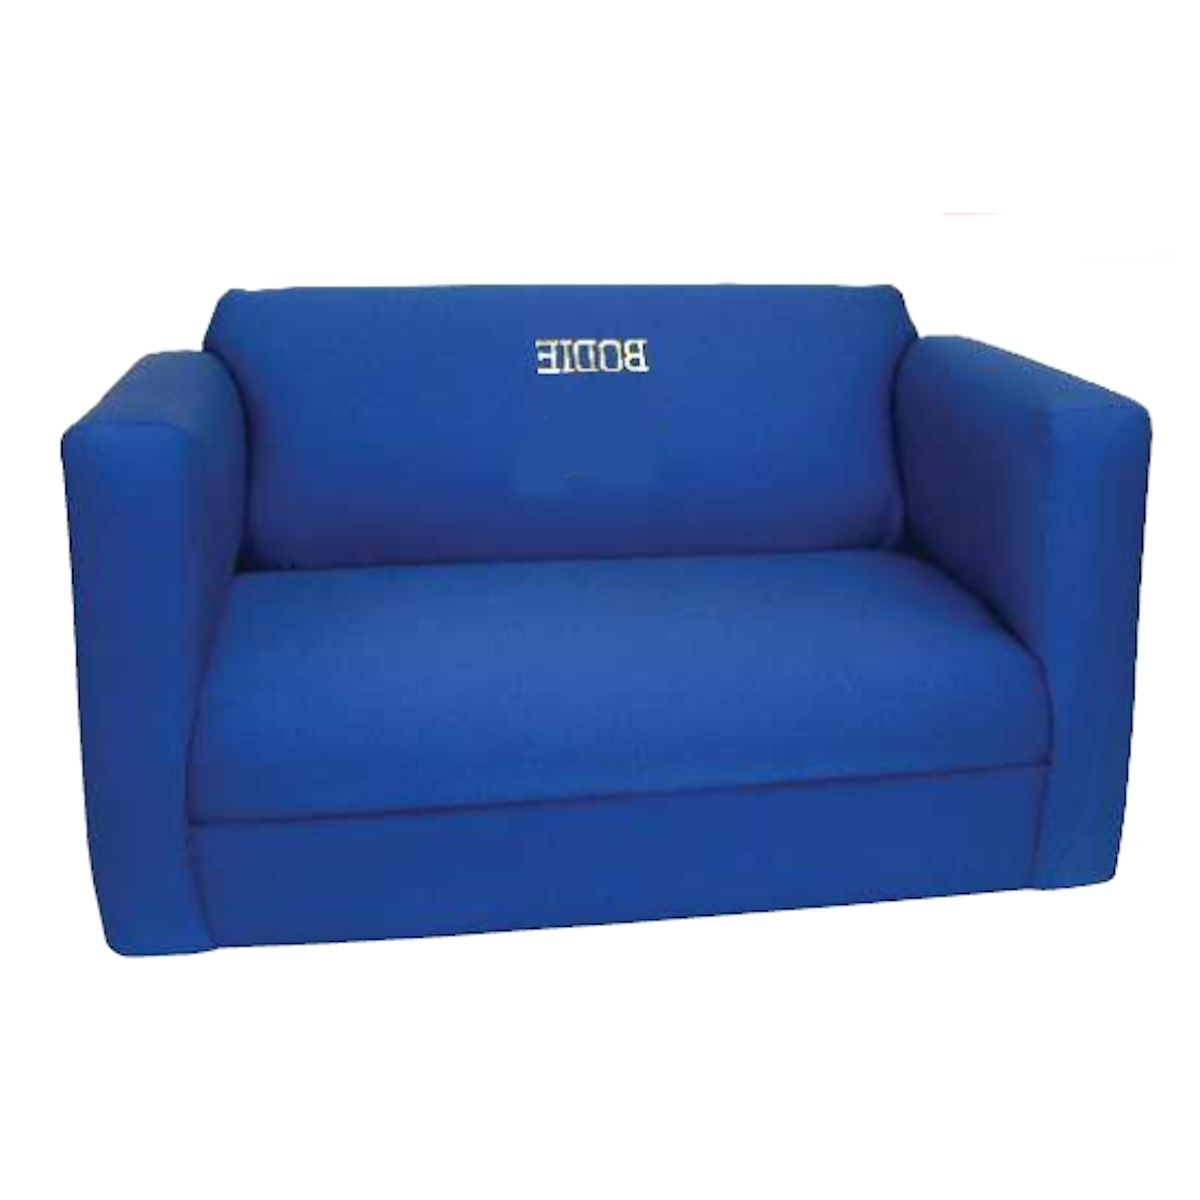 Mini Sofas For Most Recent Sofa : Kids Seating Mini Sofa Bed Kids Toddler Sofa Bed Baby Sofa (View 5 of 20)